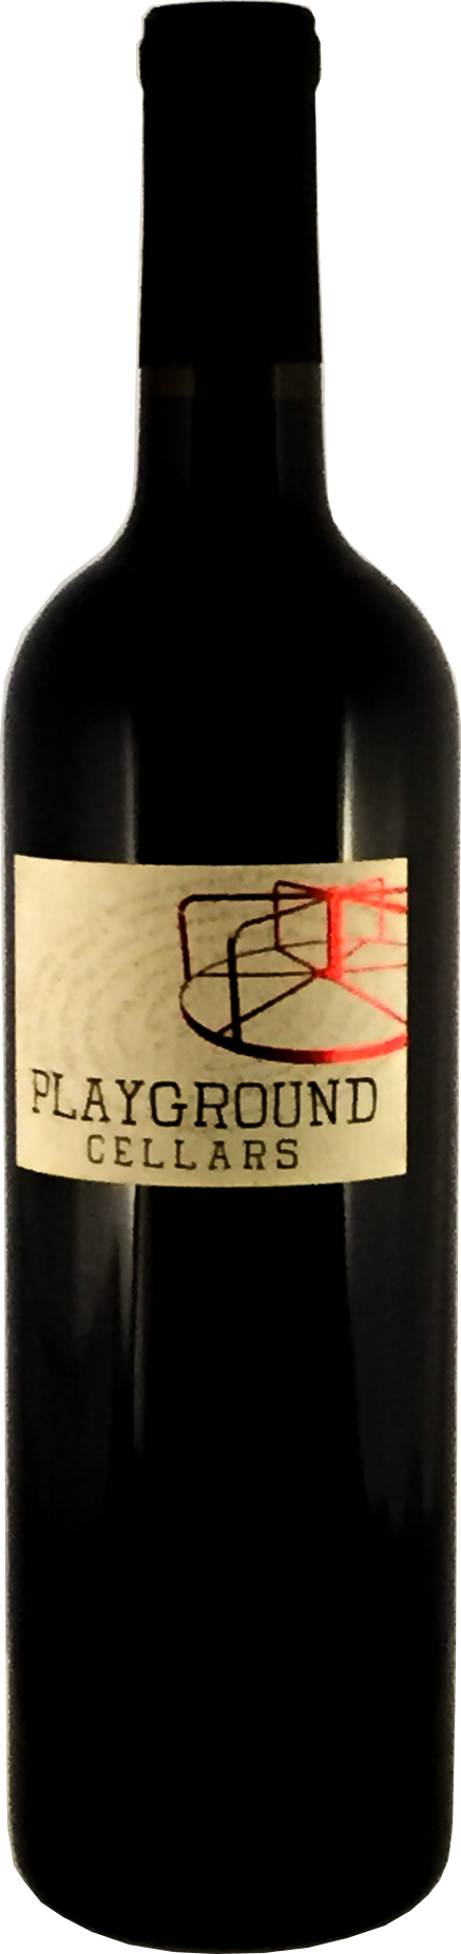 2013 Playground Cellars Howell Mountain Cabernet Sauvignon - Qorkz